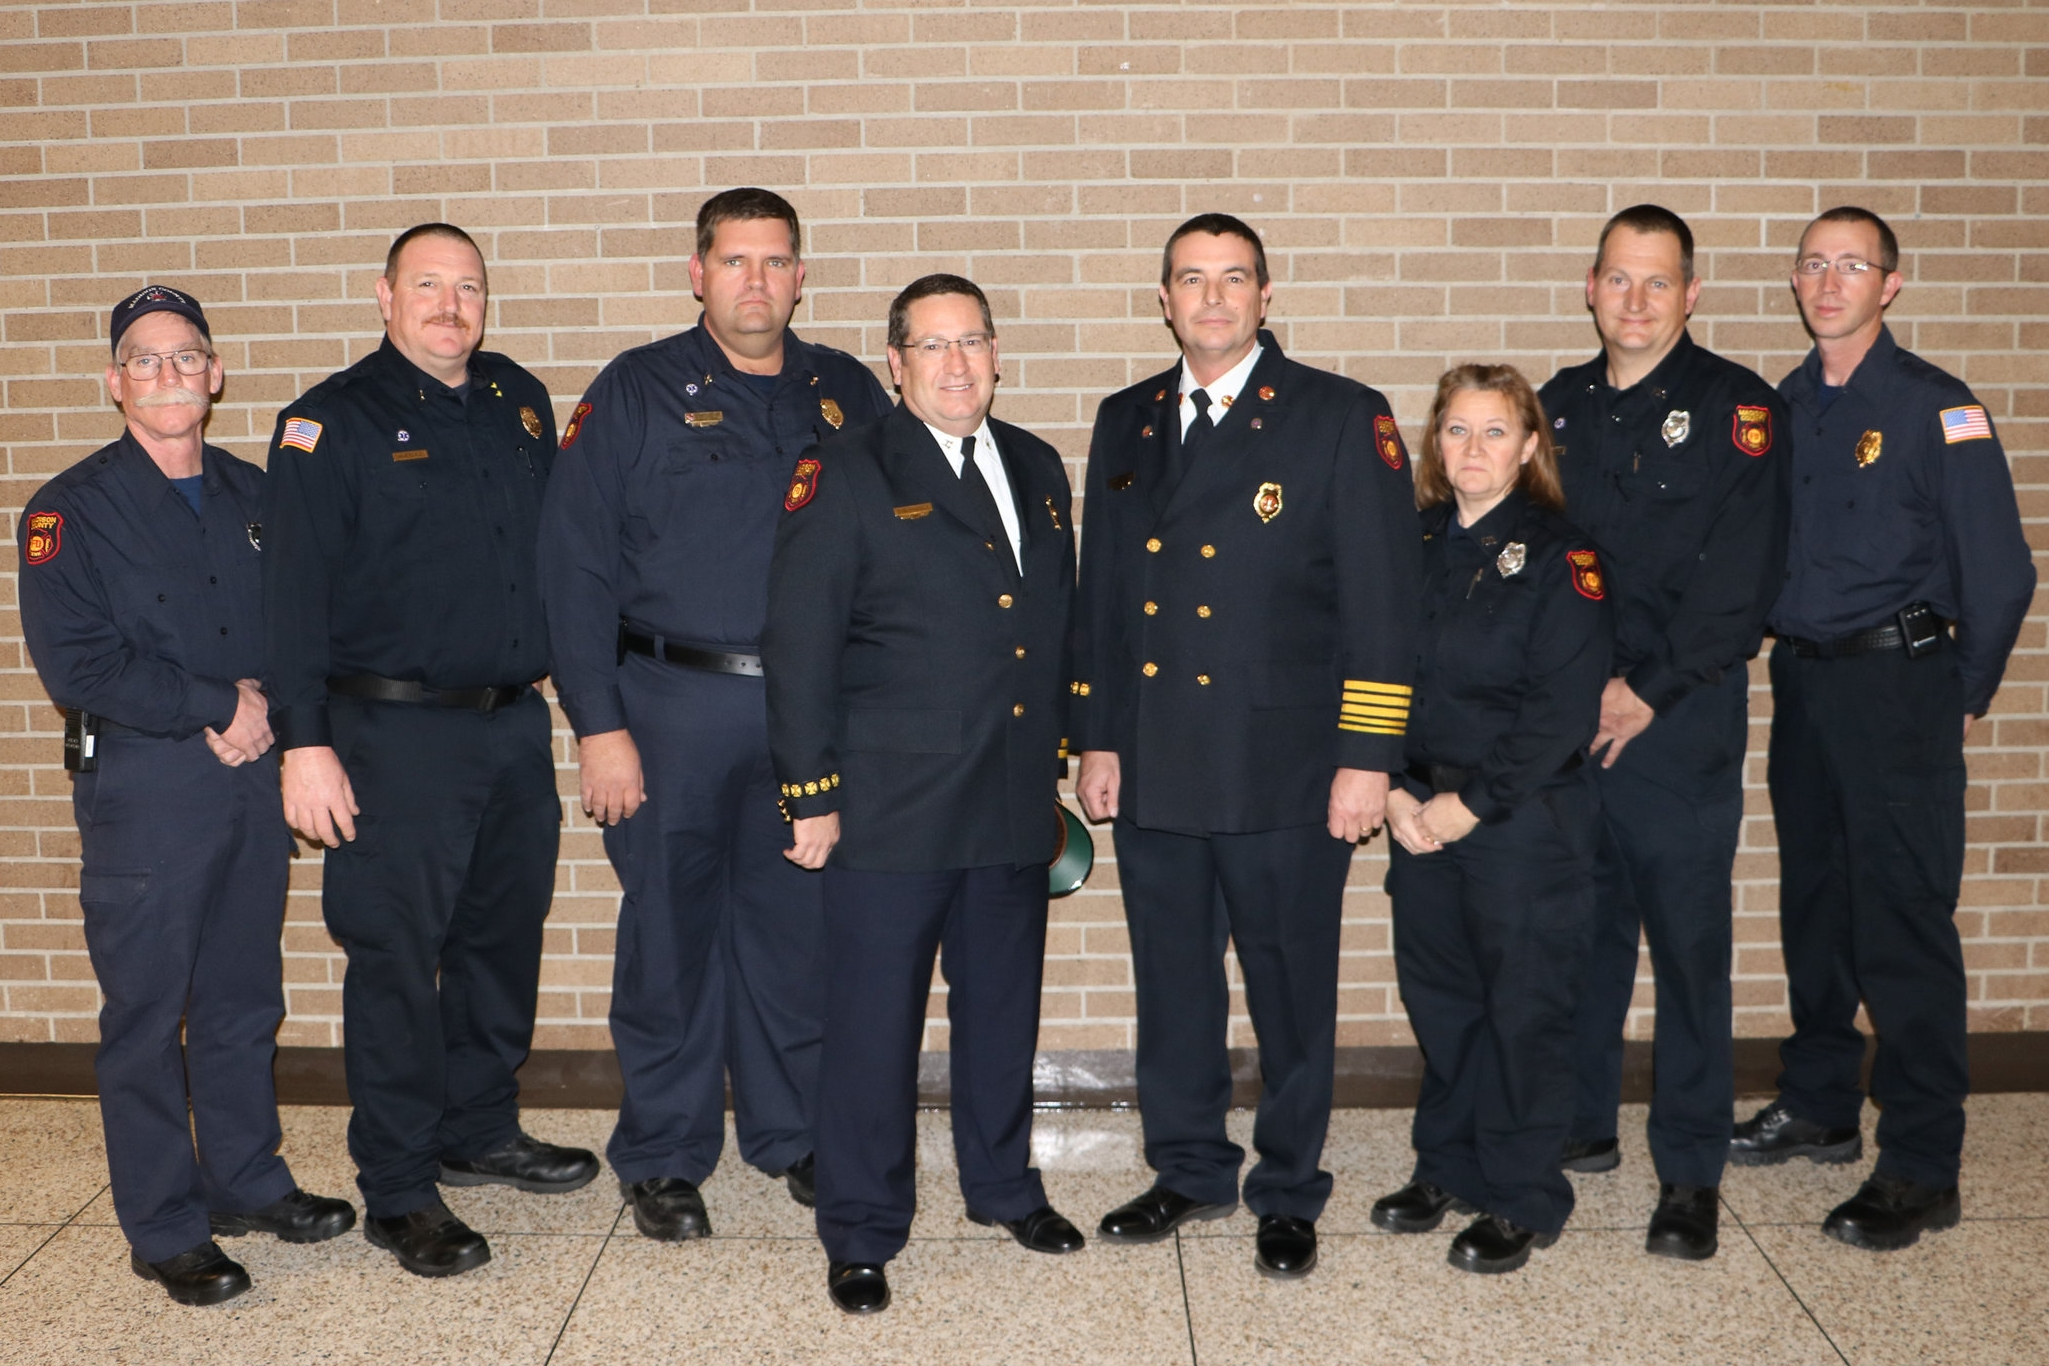 Robert Askew, Shane Barnes, Brian Kemp, Fire Marshall Don Friddle, Fire Chief Eric Turner, Kay Long, Gary Moore & Wesley Crower